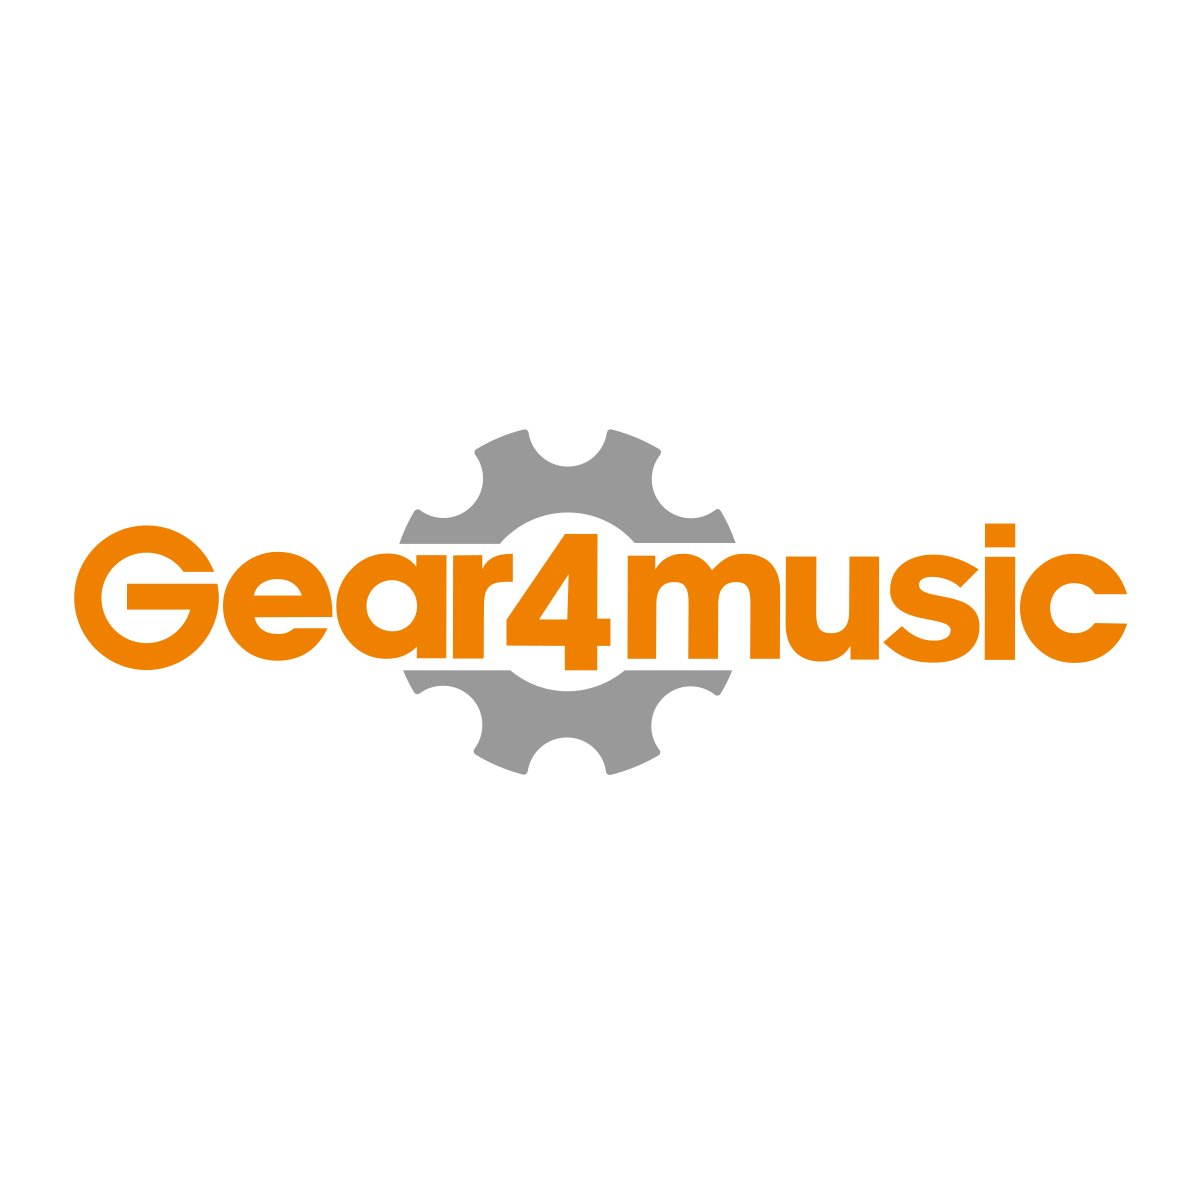 electro acoustic fretless bass guitar by gear4music black at gear4music. Black Bedroom Furniture Sets. Home Design Ideas